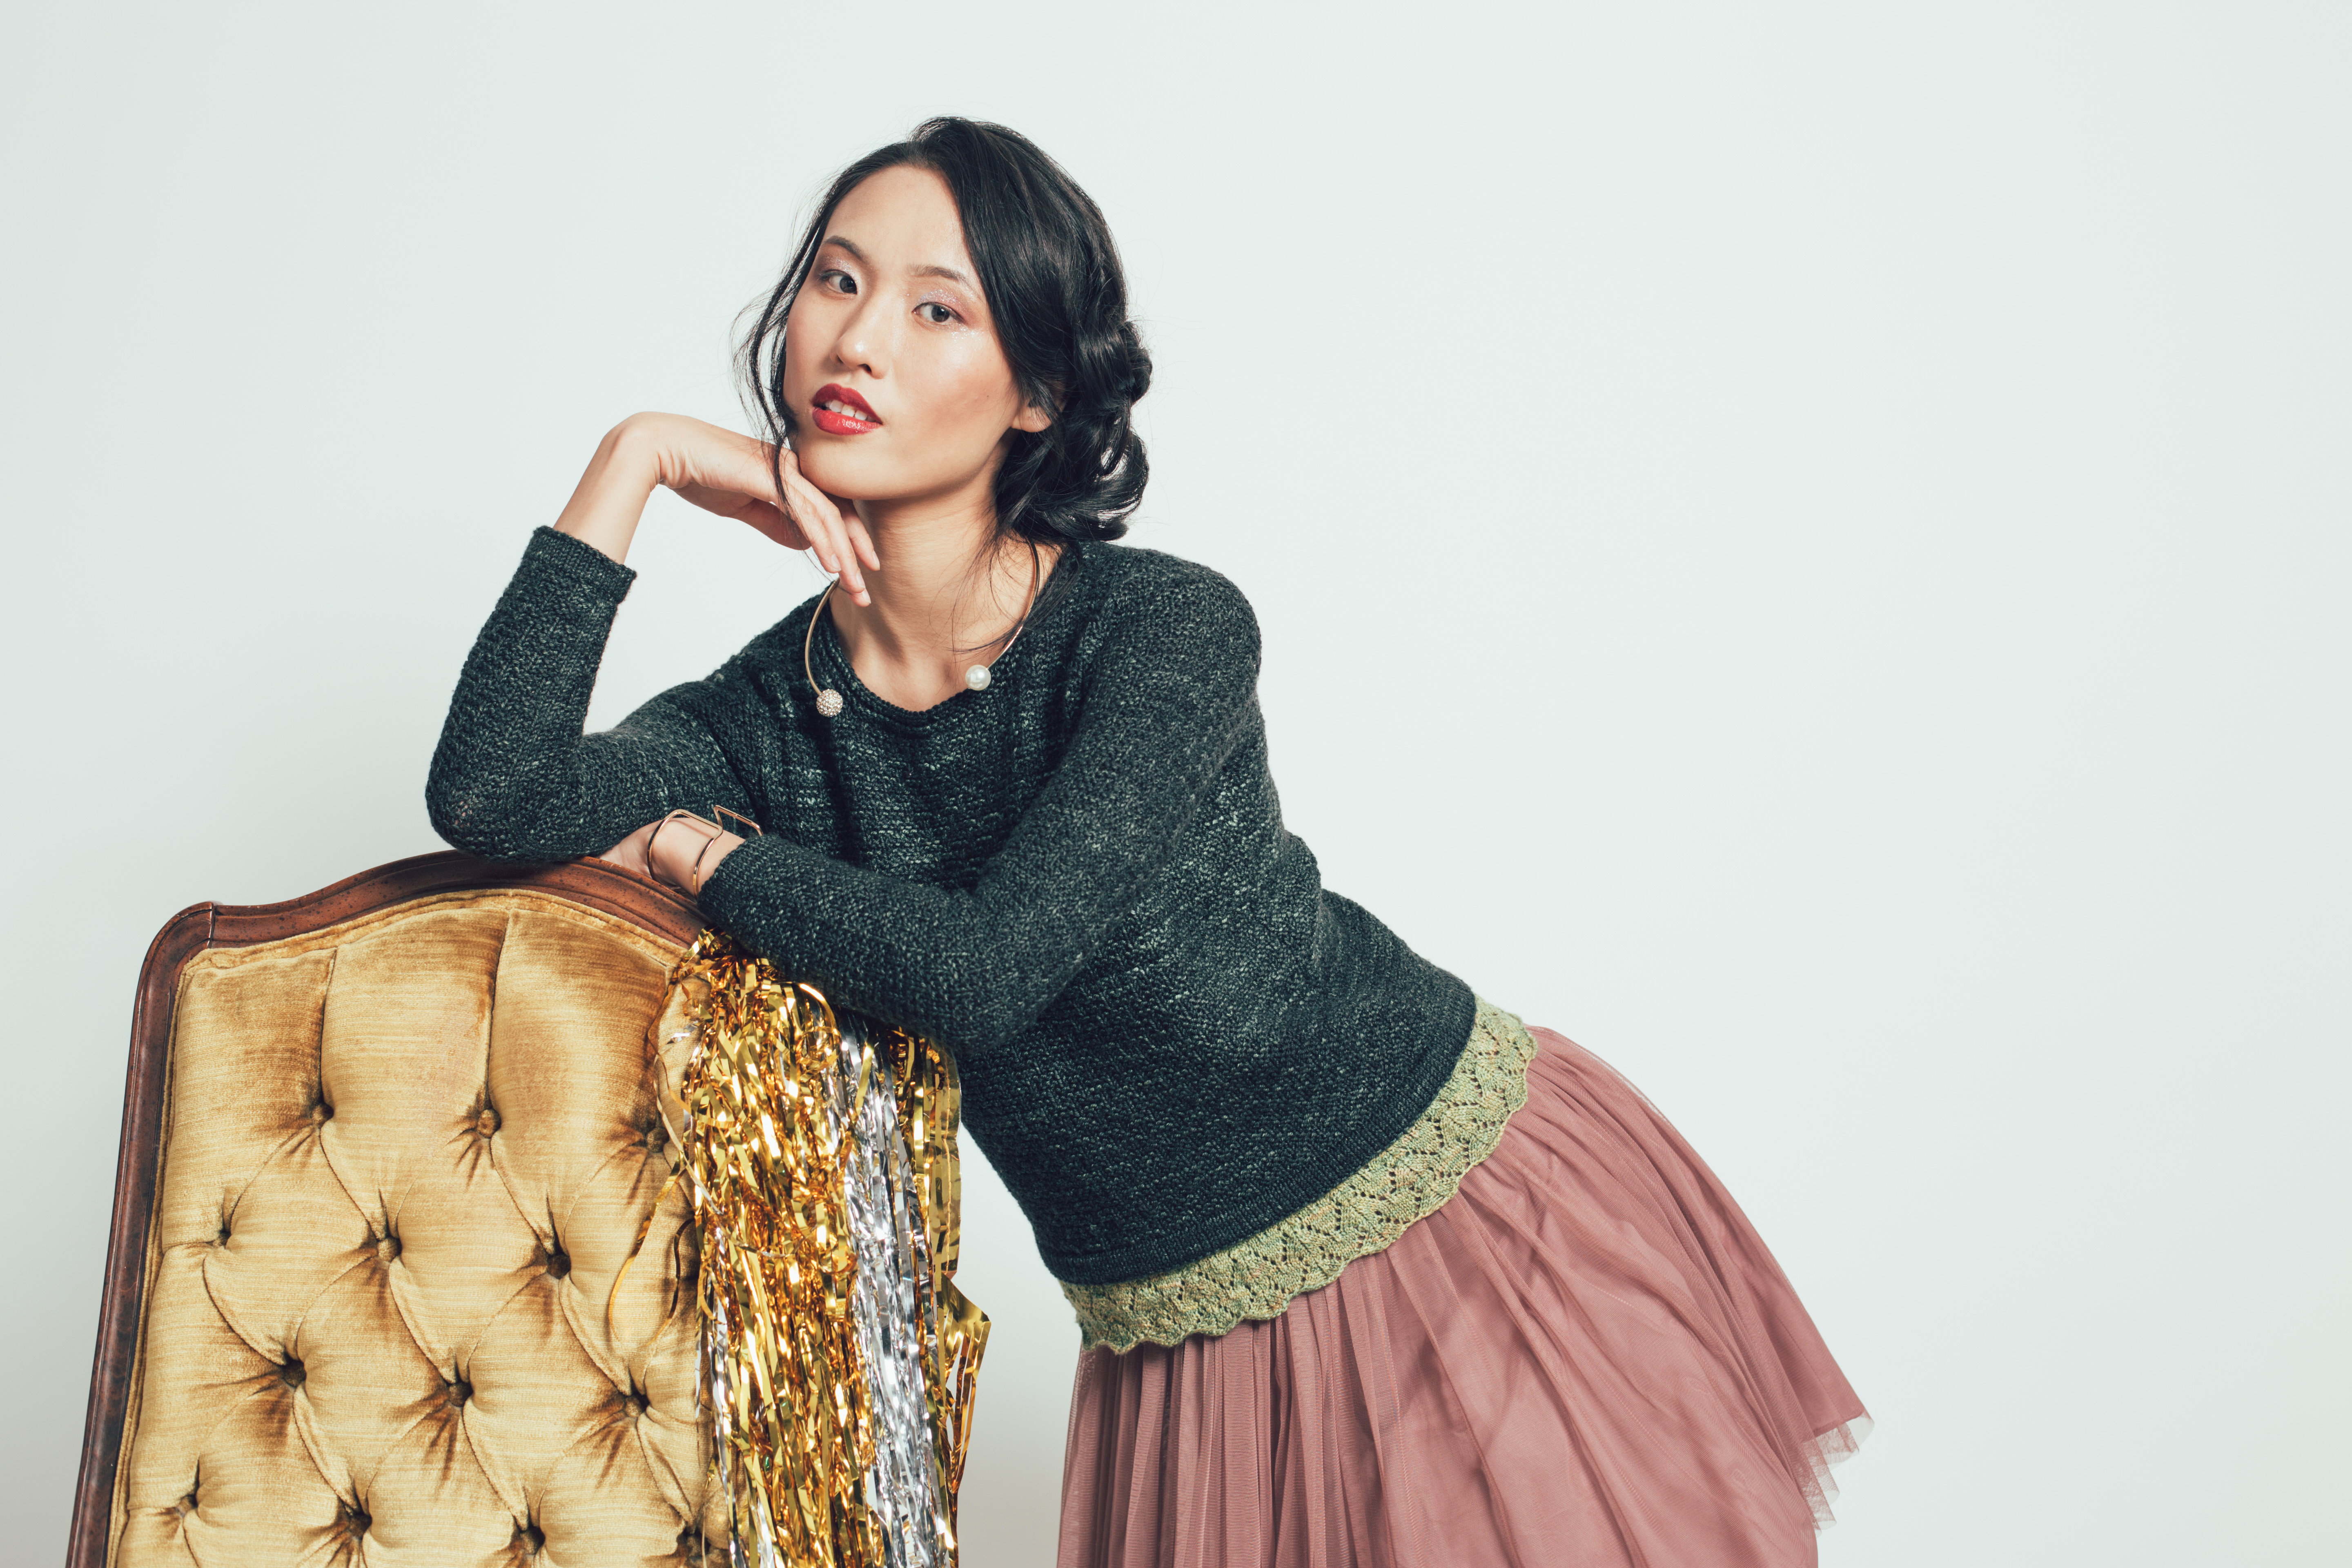 Revelry Sweater knitting pattern by Brandy Velten from knitscene Winter 2016